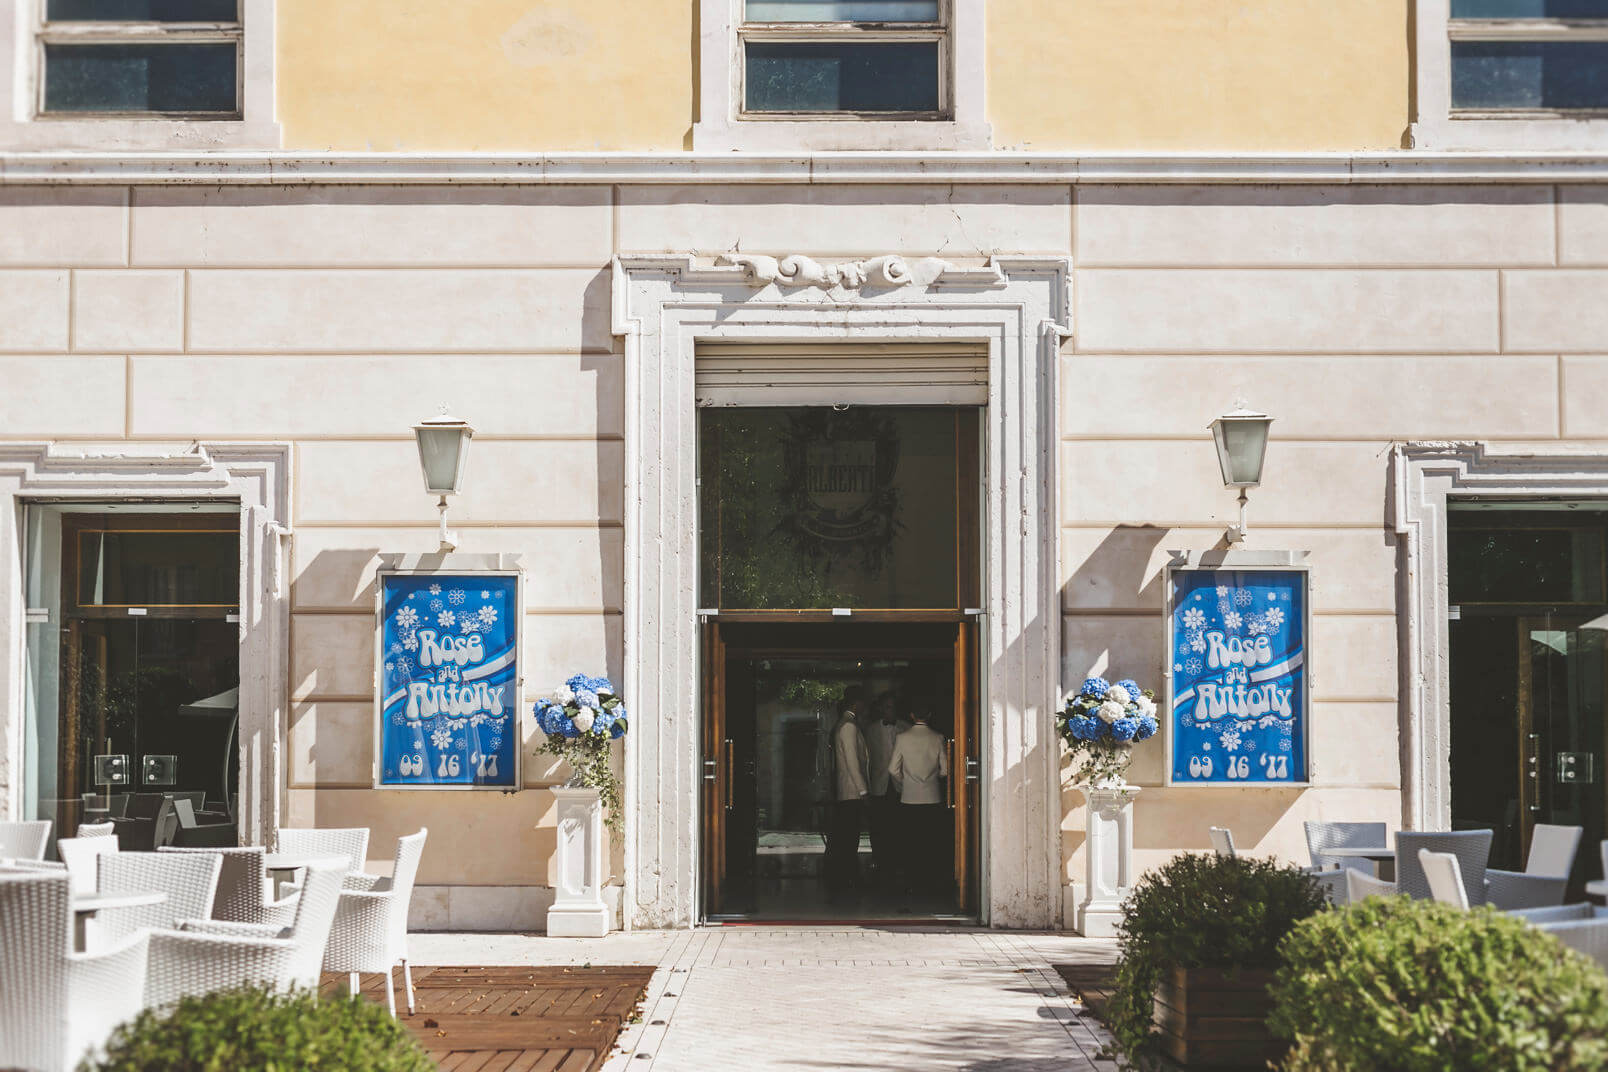 Teatro Alberti, Desenzano del Garda. The main facade of the wedding venue with the bills related to the wedding.